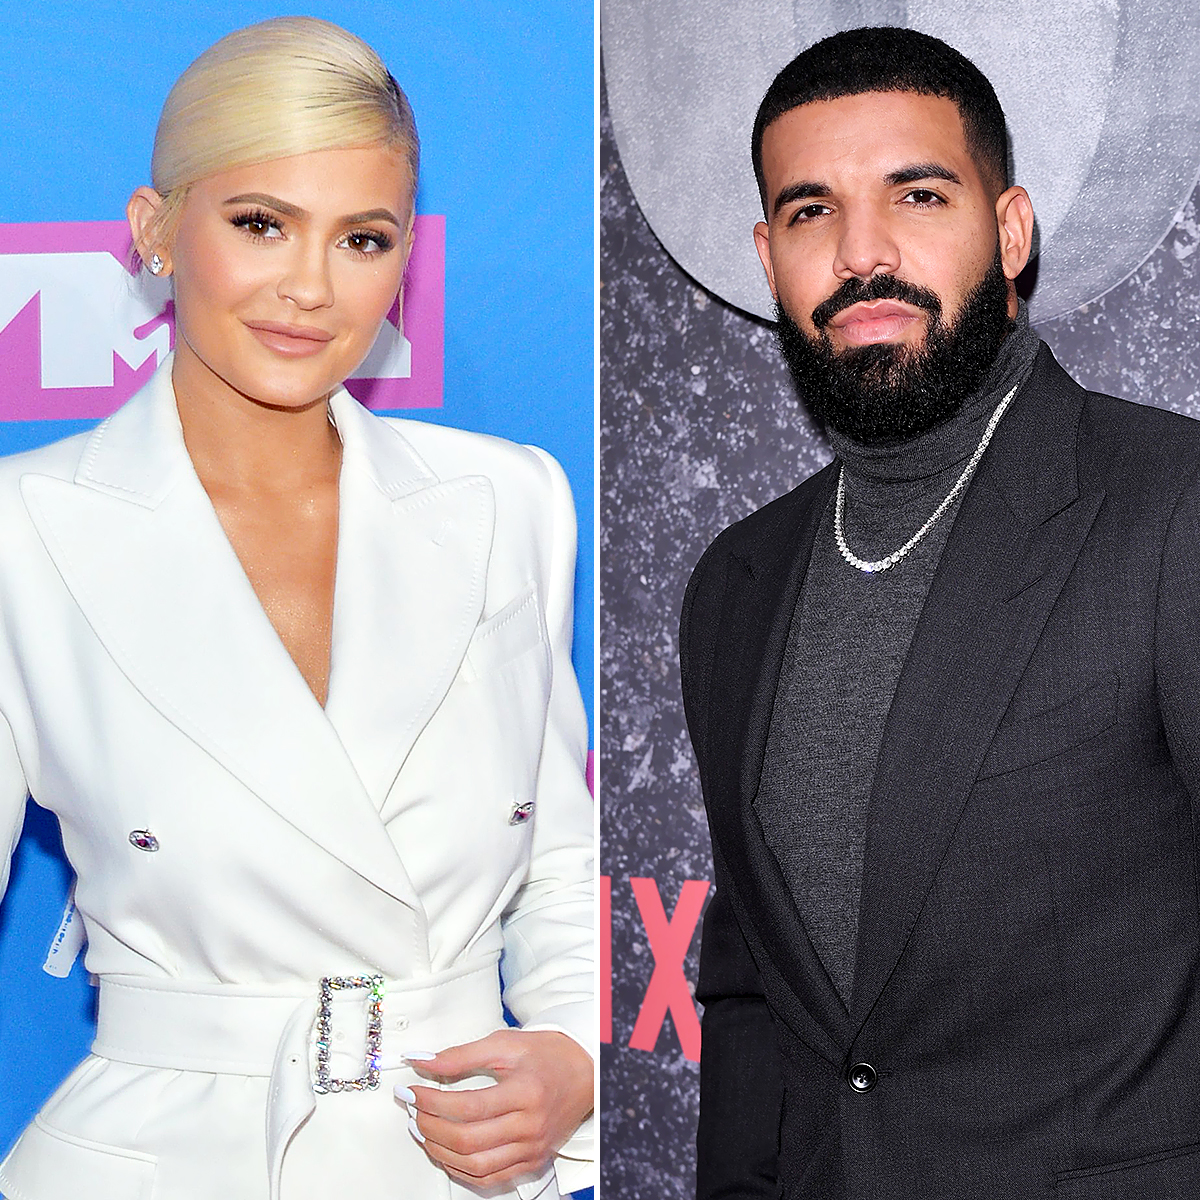 Kylie-Jenner-and-Drake-Have-Been-Seeing-Each-Other-Romantically